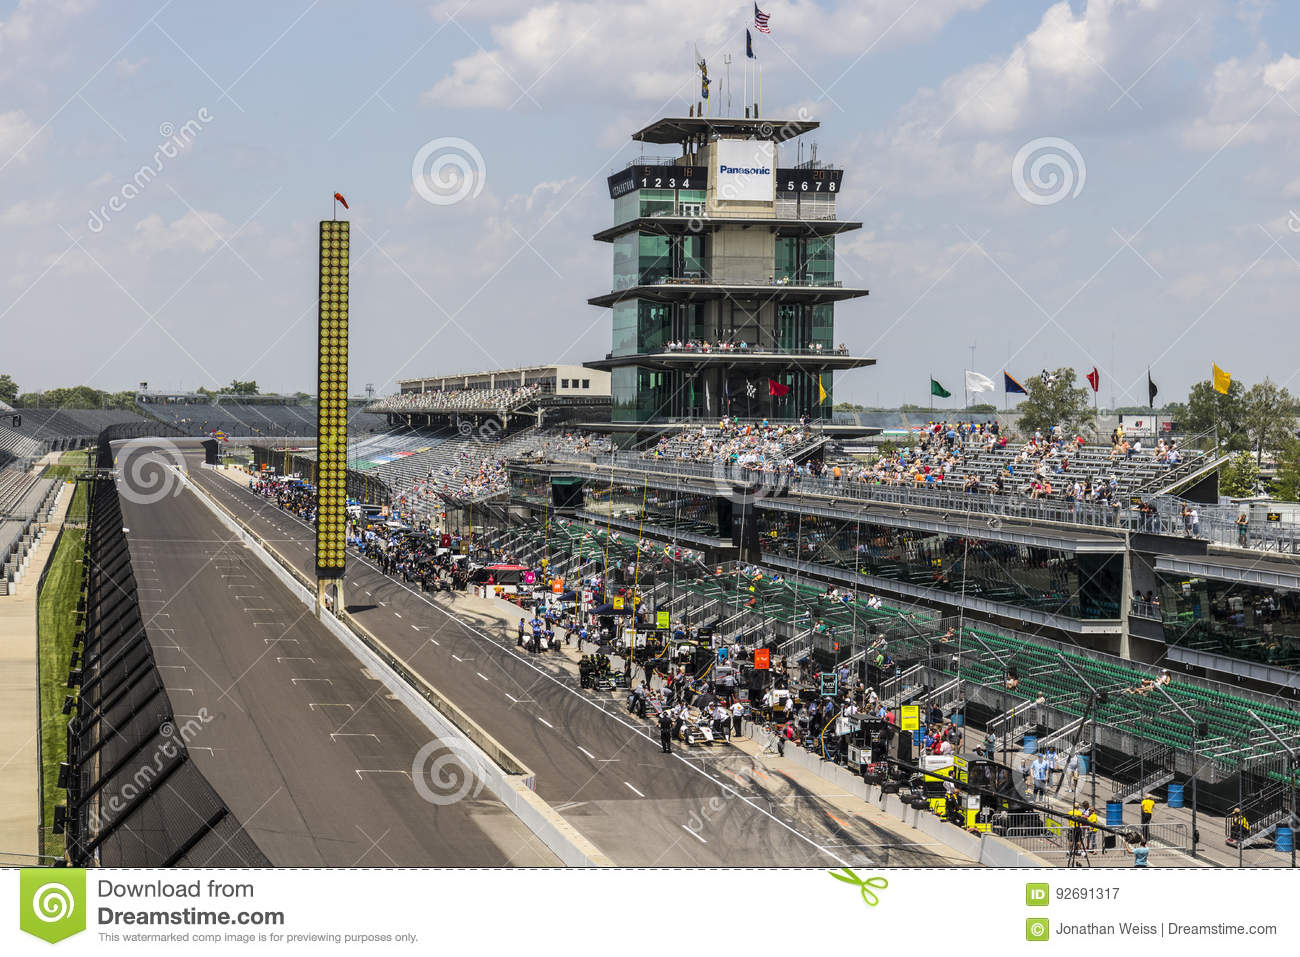 Indianapolis - Circa May 2017: The Panasonic Pagoda at Indianapolis Motor Speedway. IMS Prepares for the of the Indy 500 IV